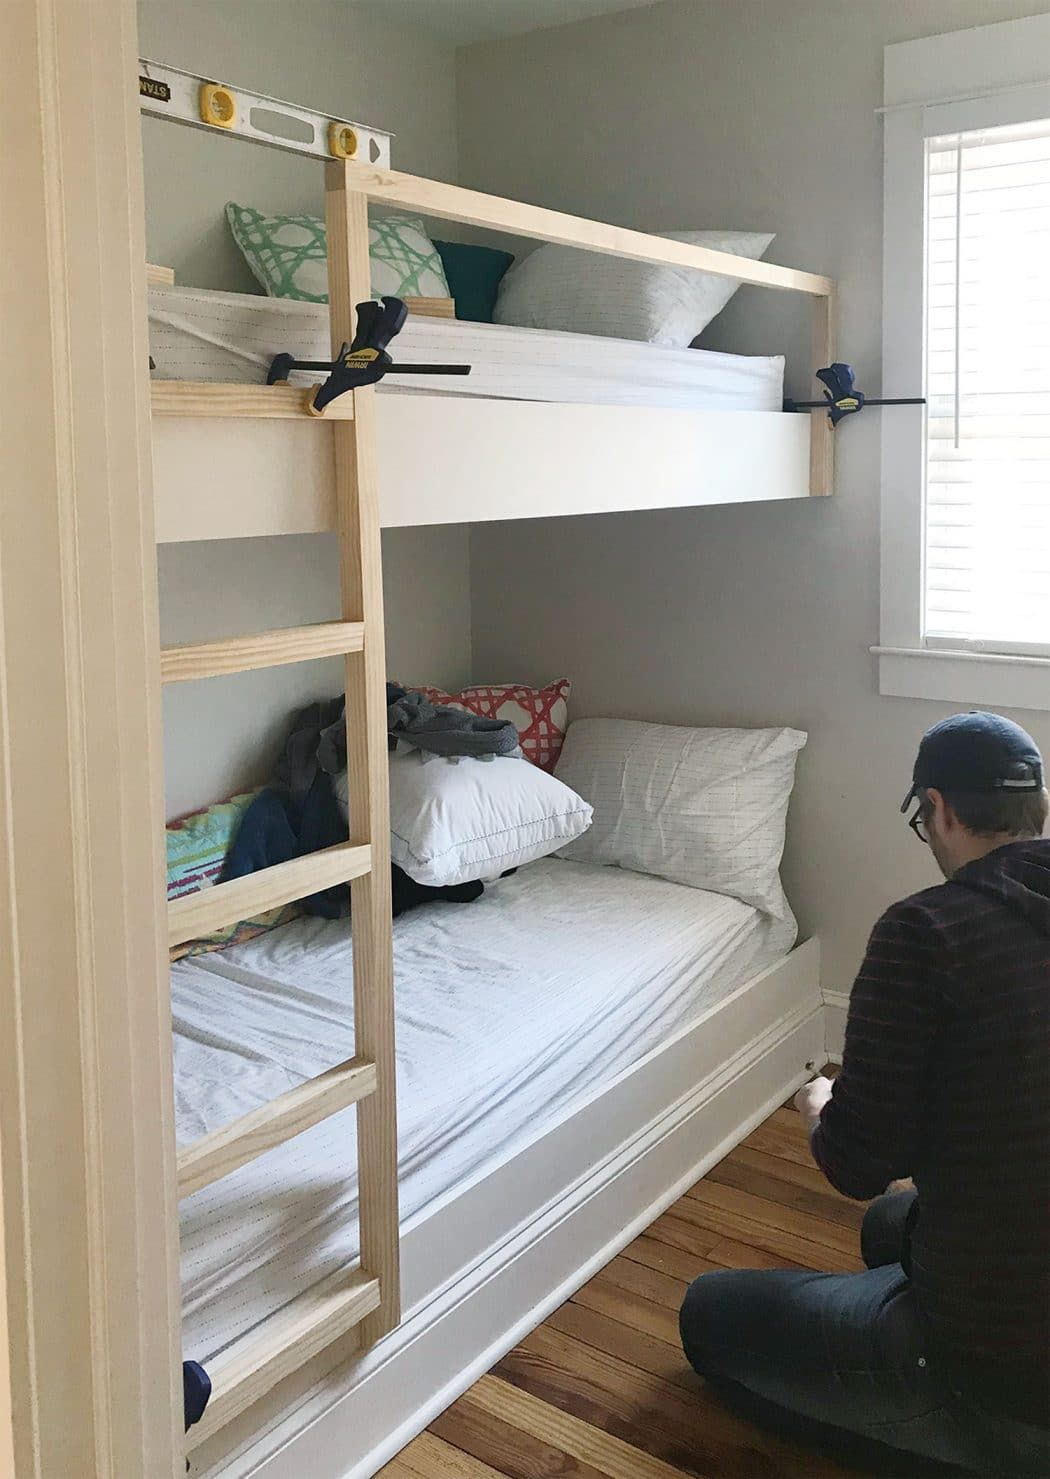 How To Make DIY BuiltIn Bunk Beds Young House Love